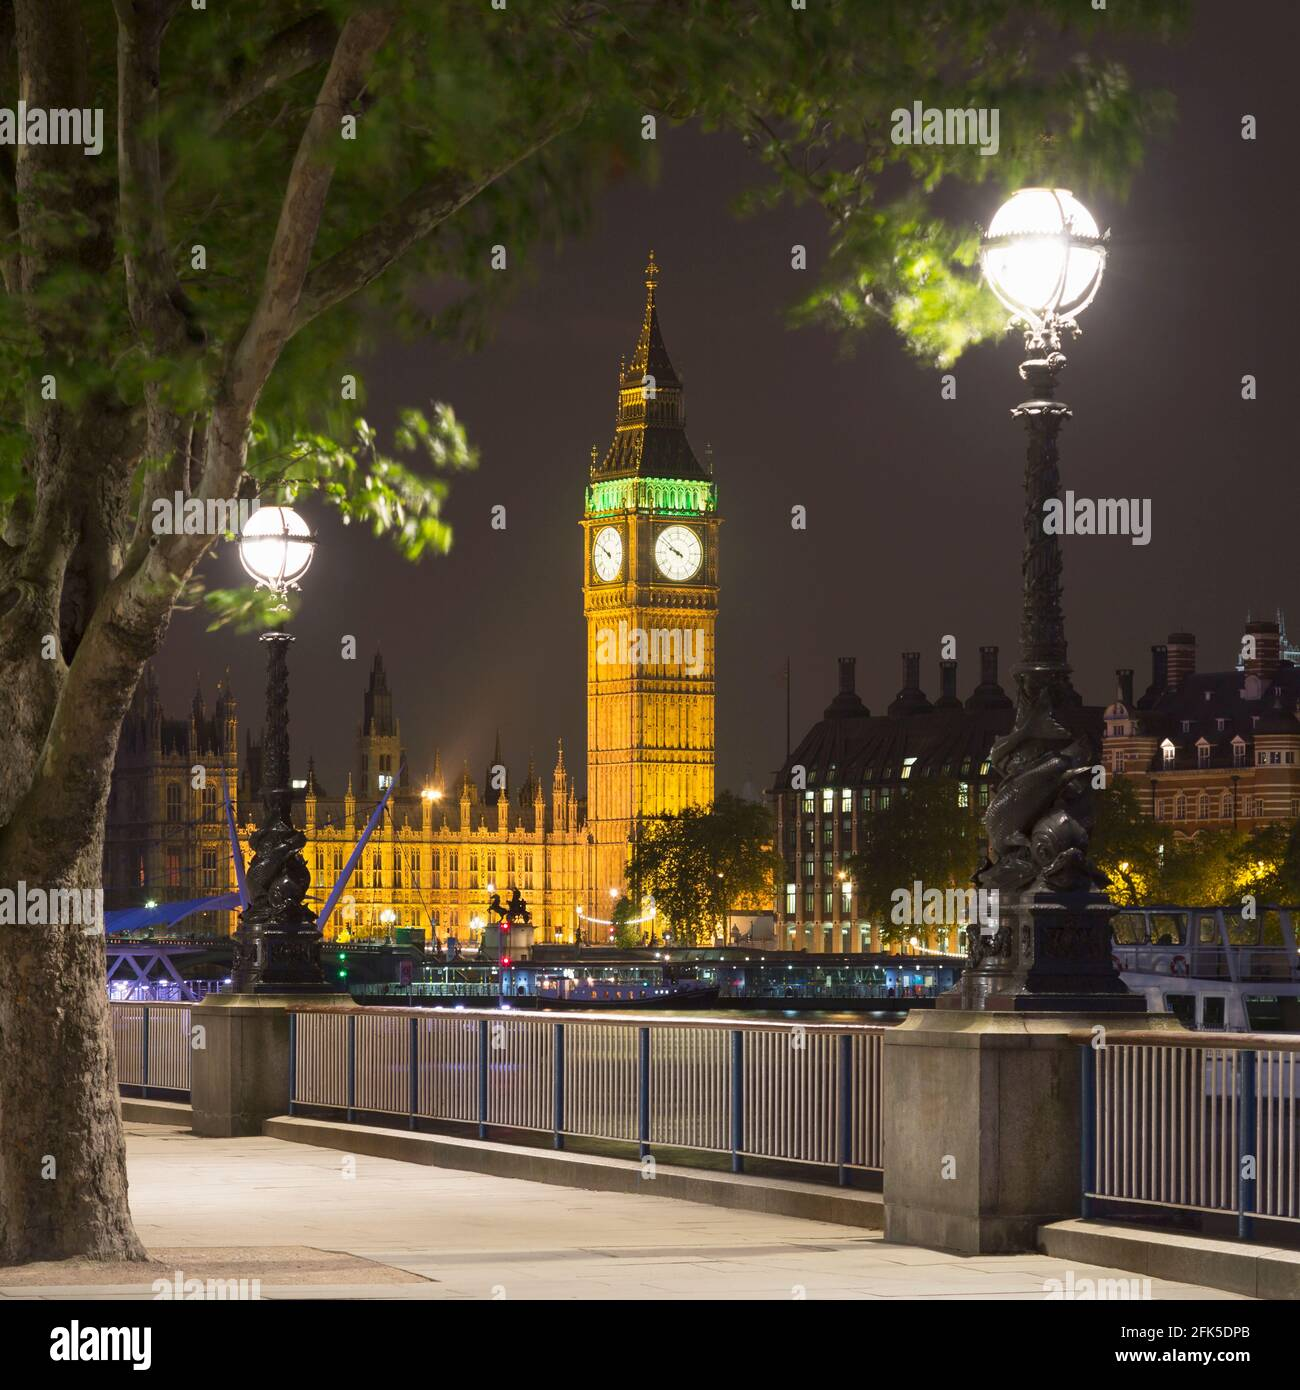 Elizabeth Tower at the Houses of Parliament, Westminster, England, taken at night from the South Bank, public ground. Stock Photo